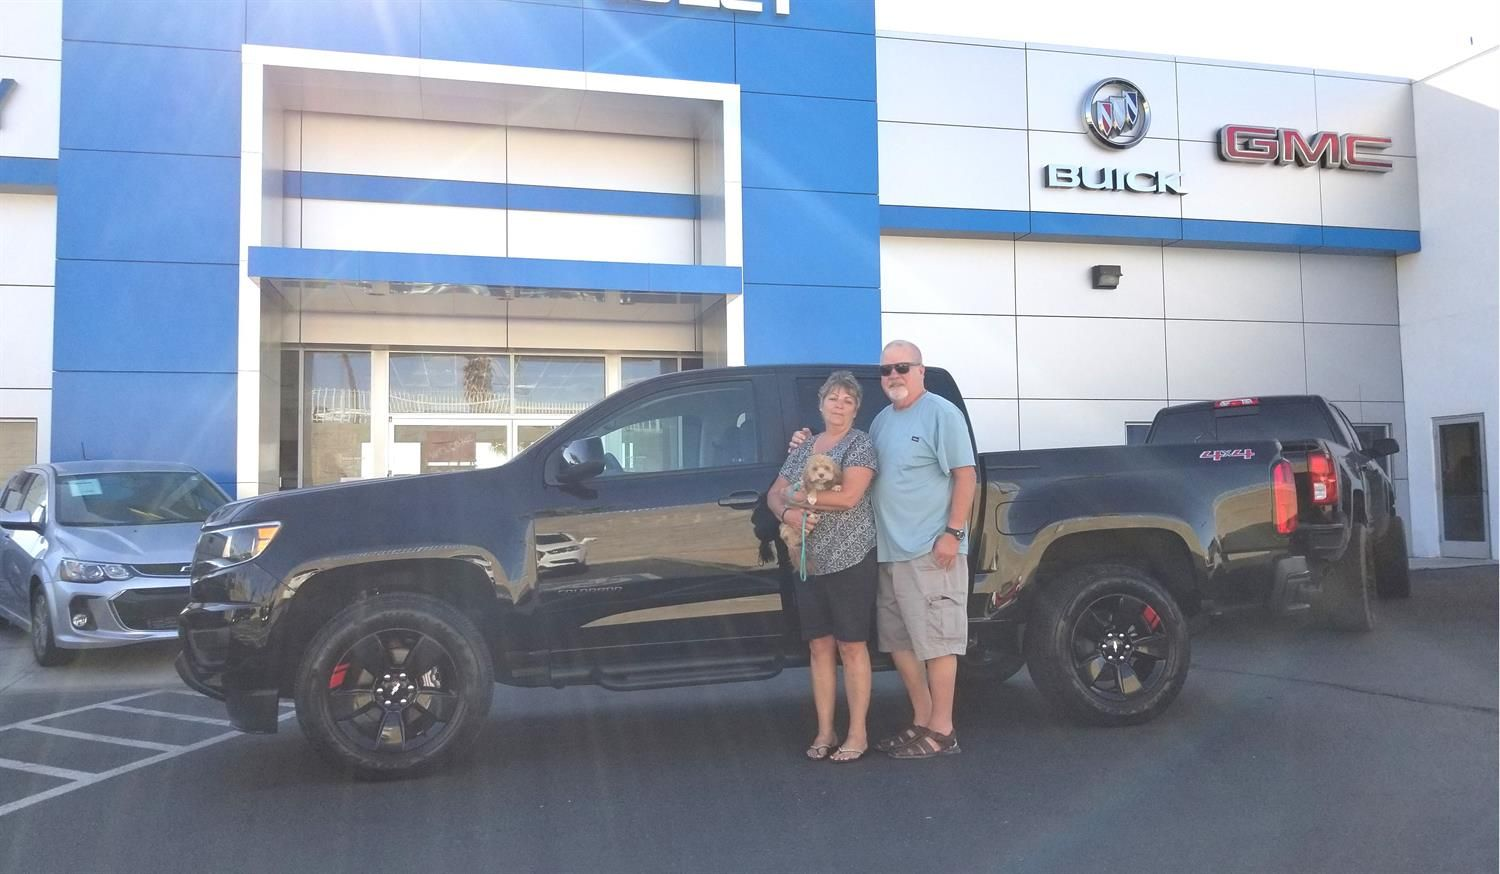 Brian And Deborah Congratulations On Your New 2018 Chevrolet Colorado Thank You Again For The Opportunity To Earn Your Chevrolet Colorado Buick Gmc